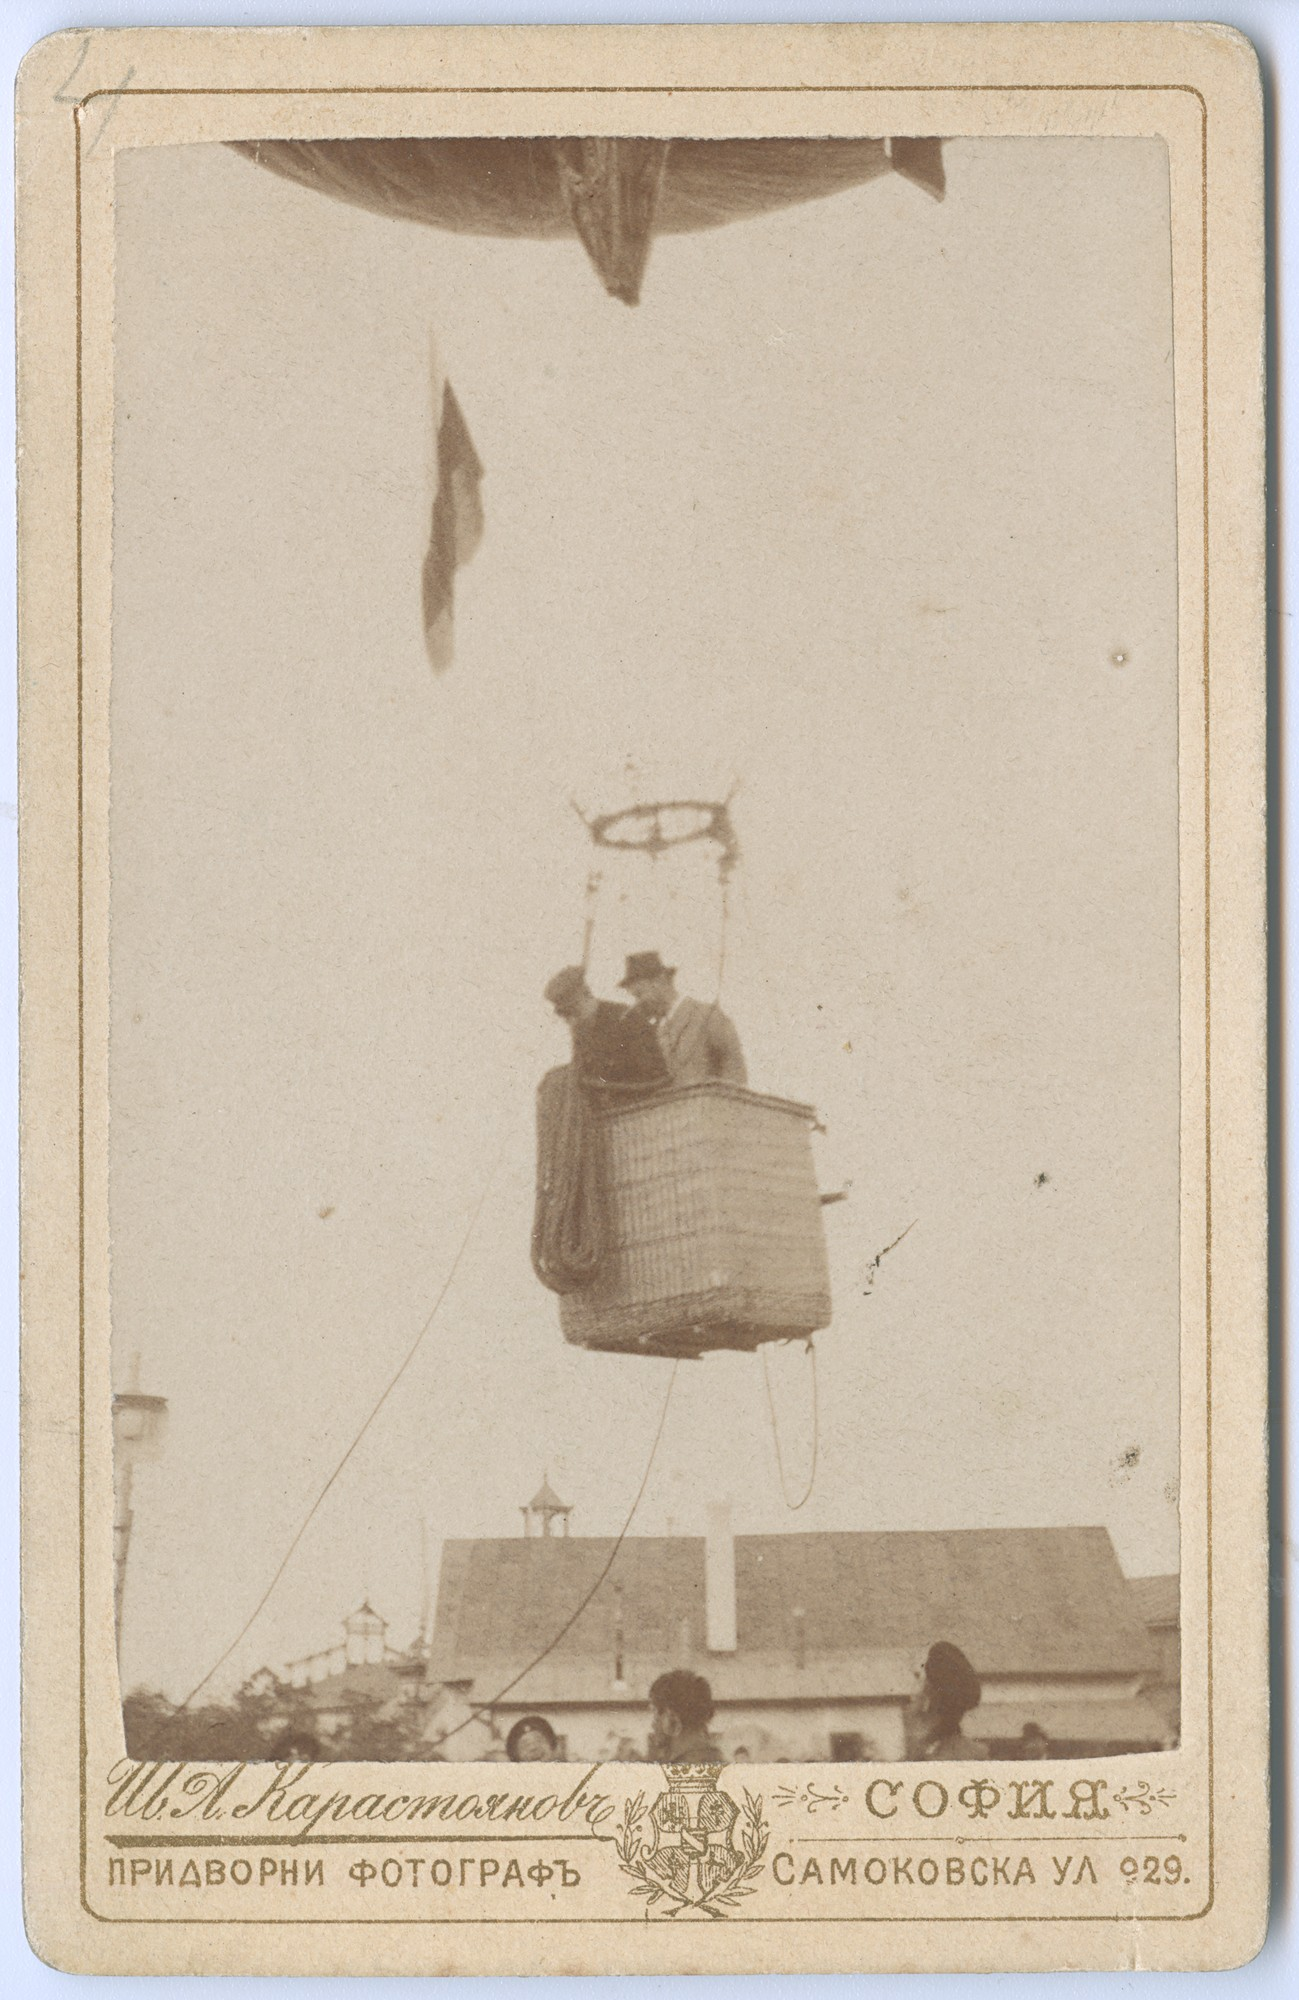 Eugene Godard and Dr. Nikola Genadiev in a balloon, © State Archives - Plovdiv